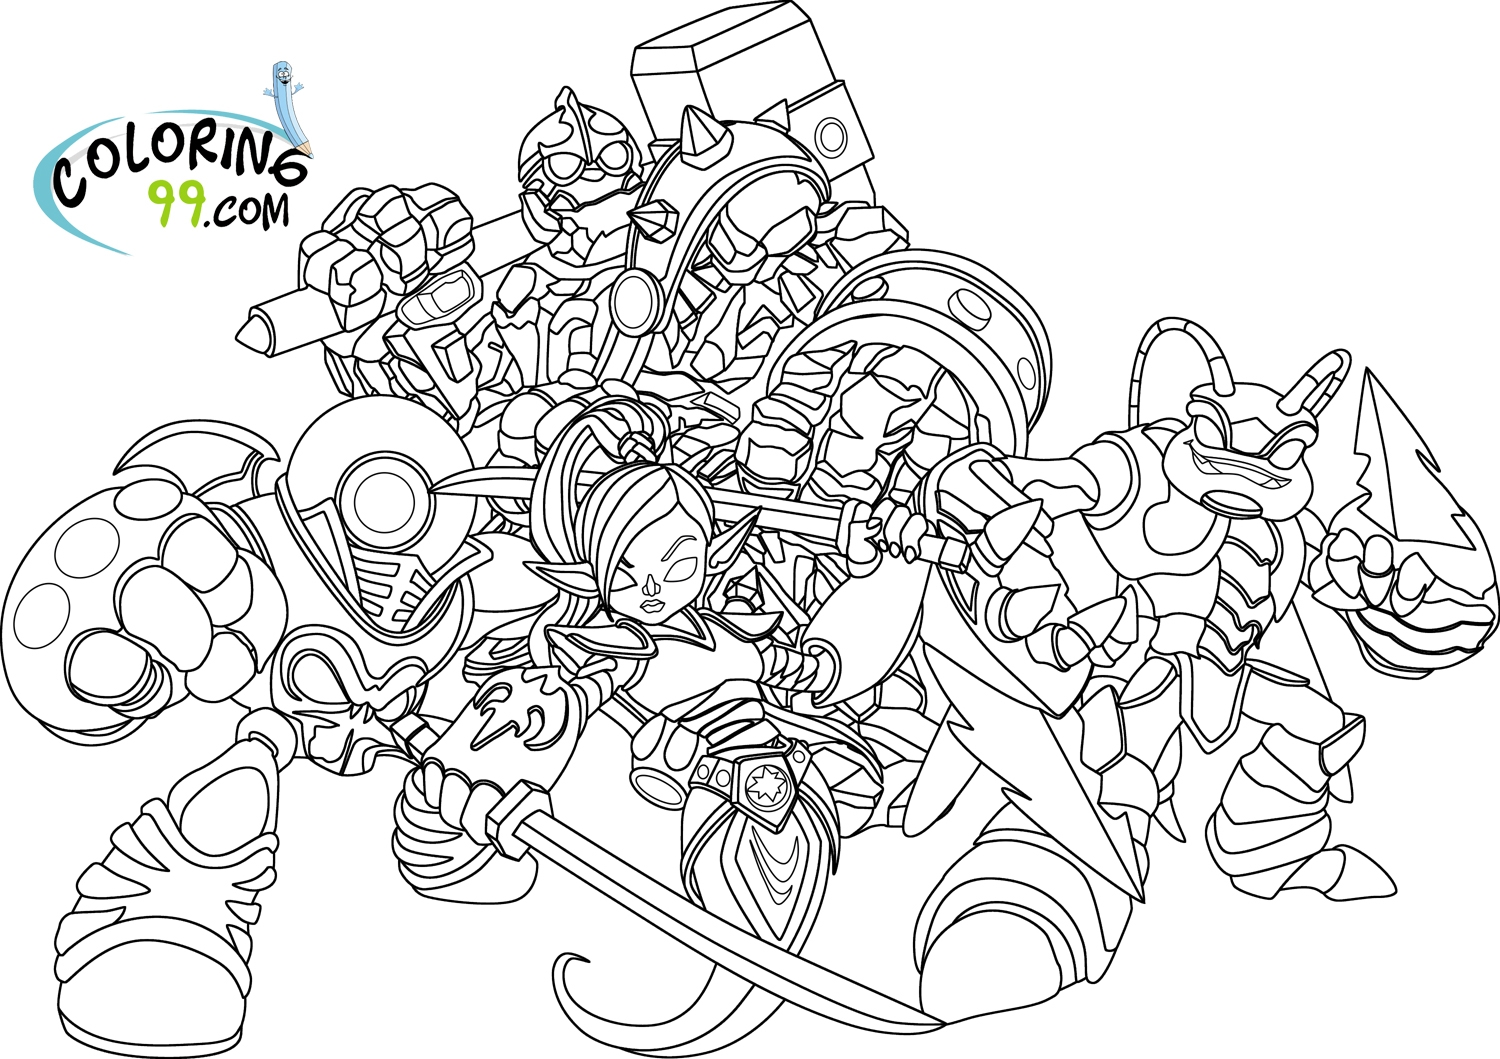 skylanders coloring pages - skylanders giants coloring pages